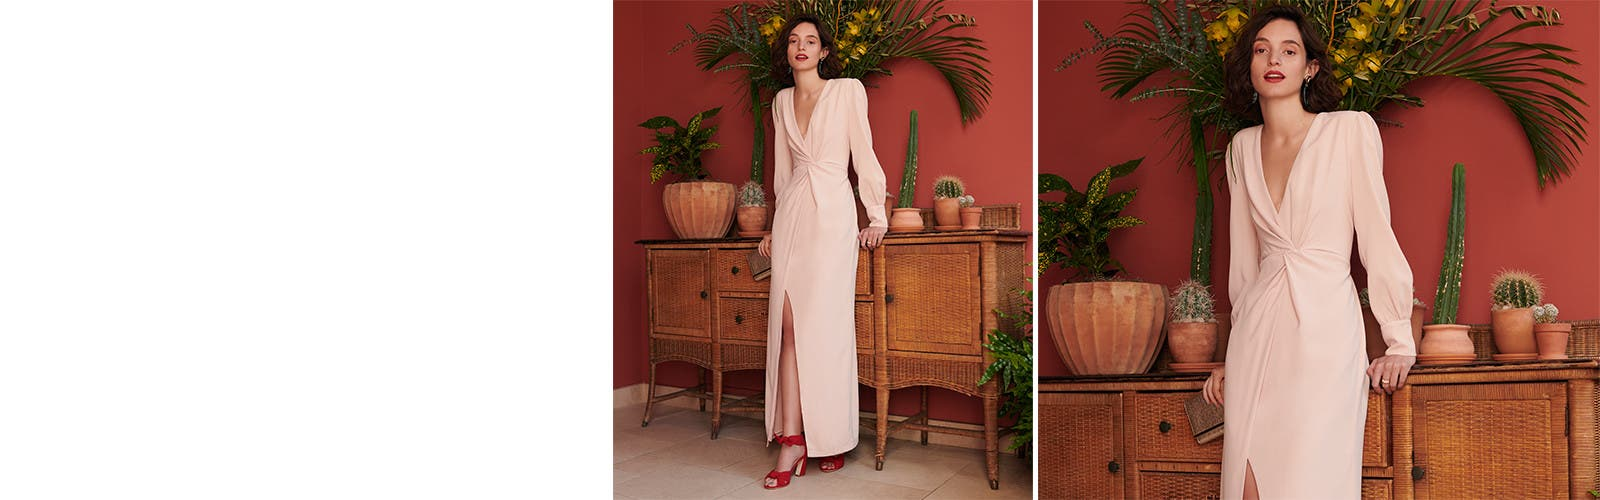 Women's wedding-guest outfits for every dress code.